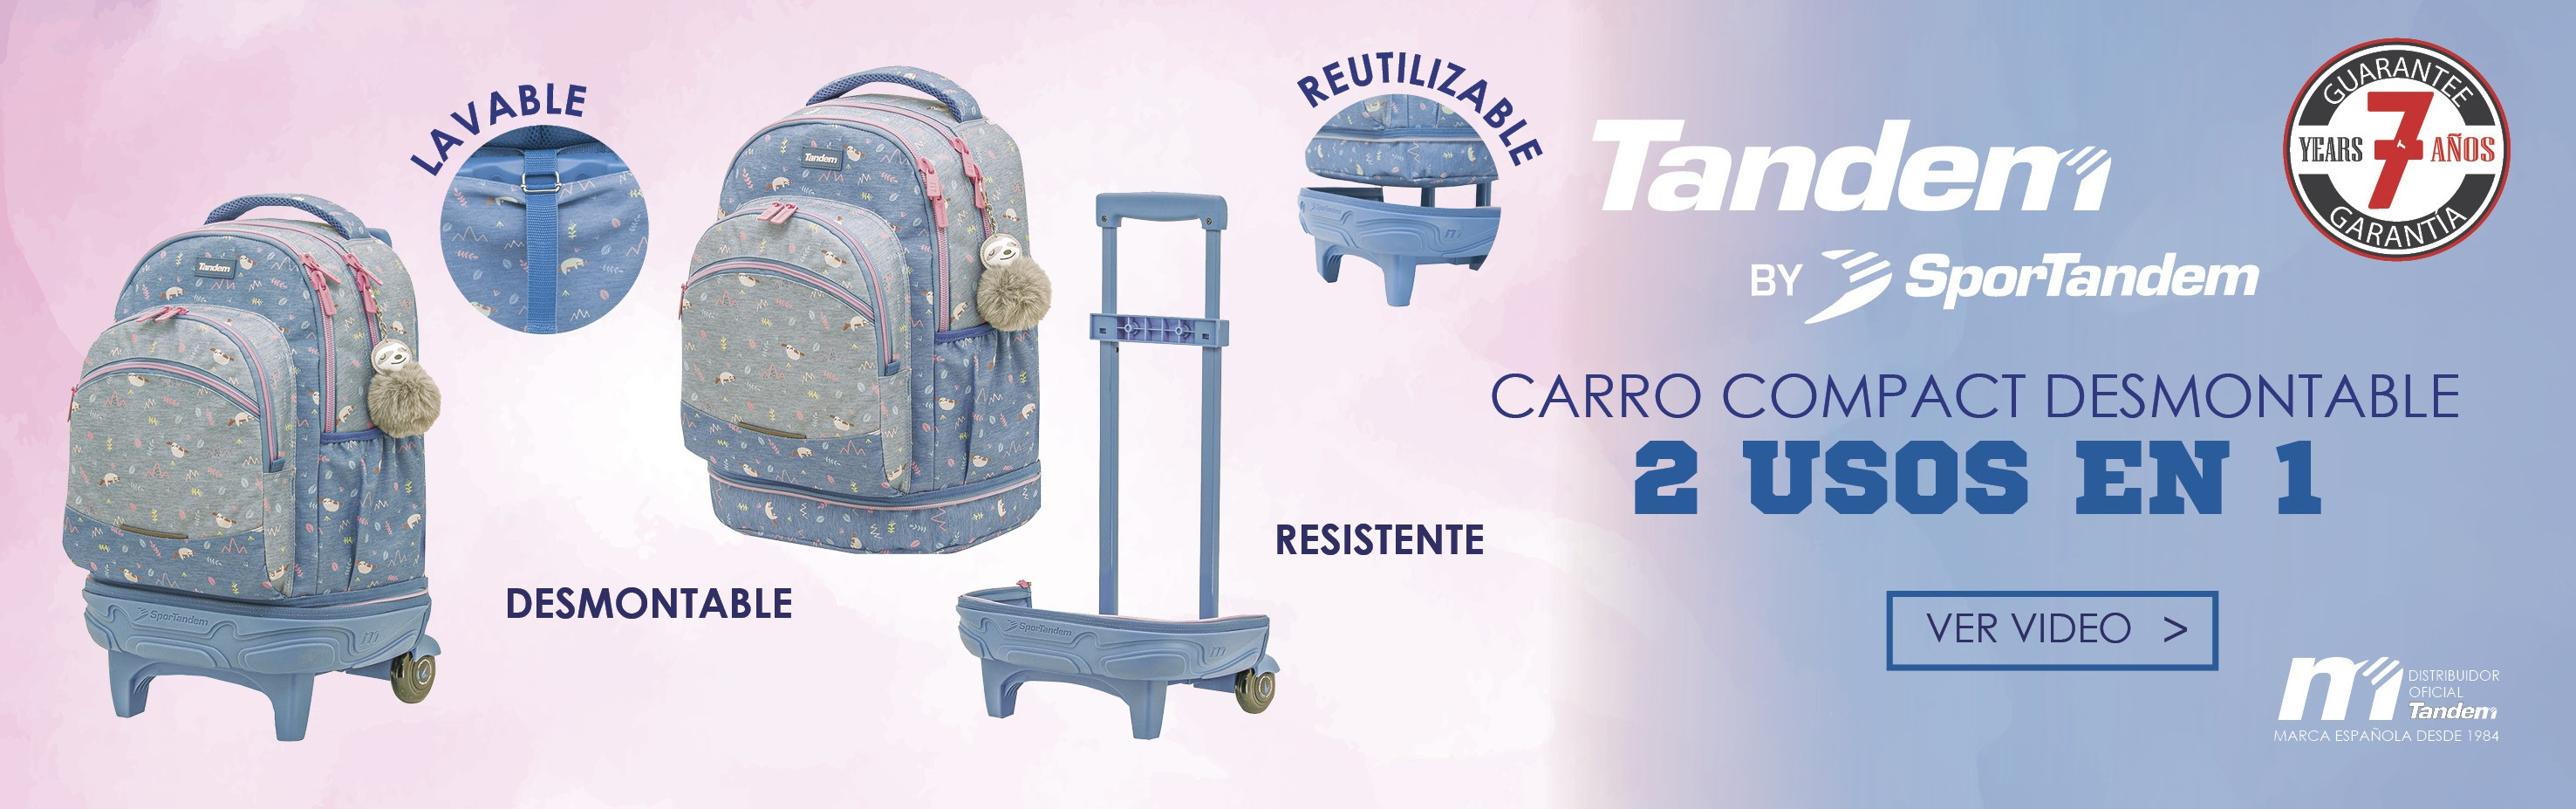 CARRO COMPACT DESMONTABLE